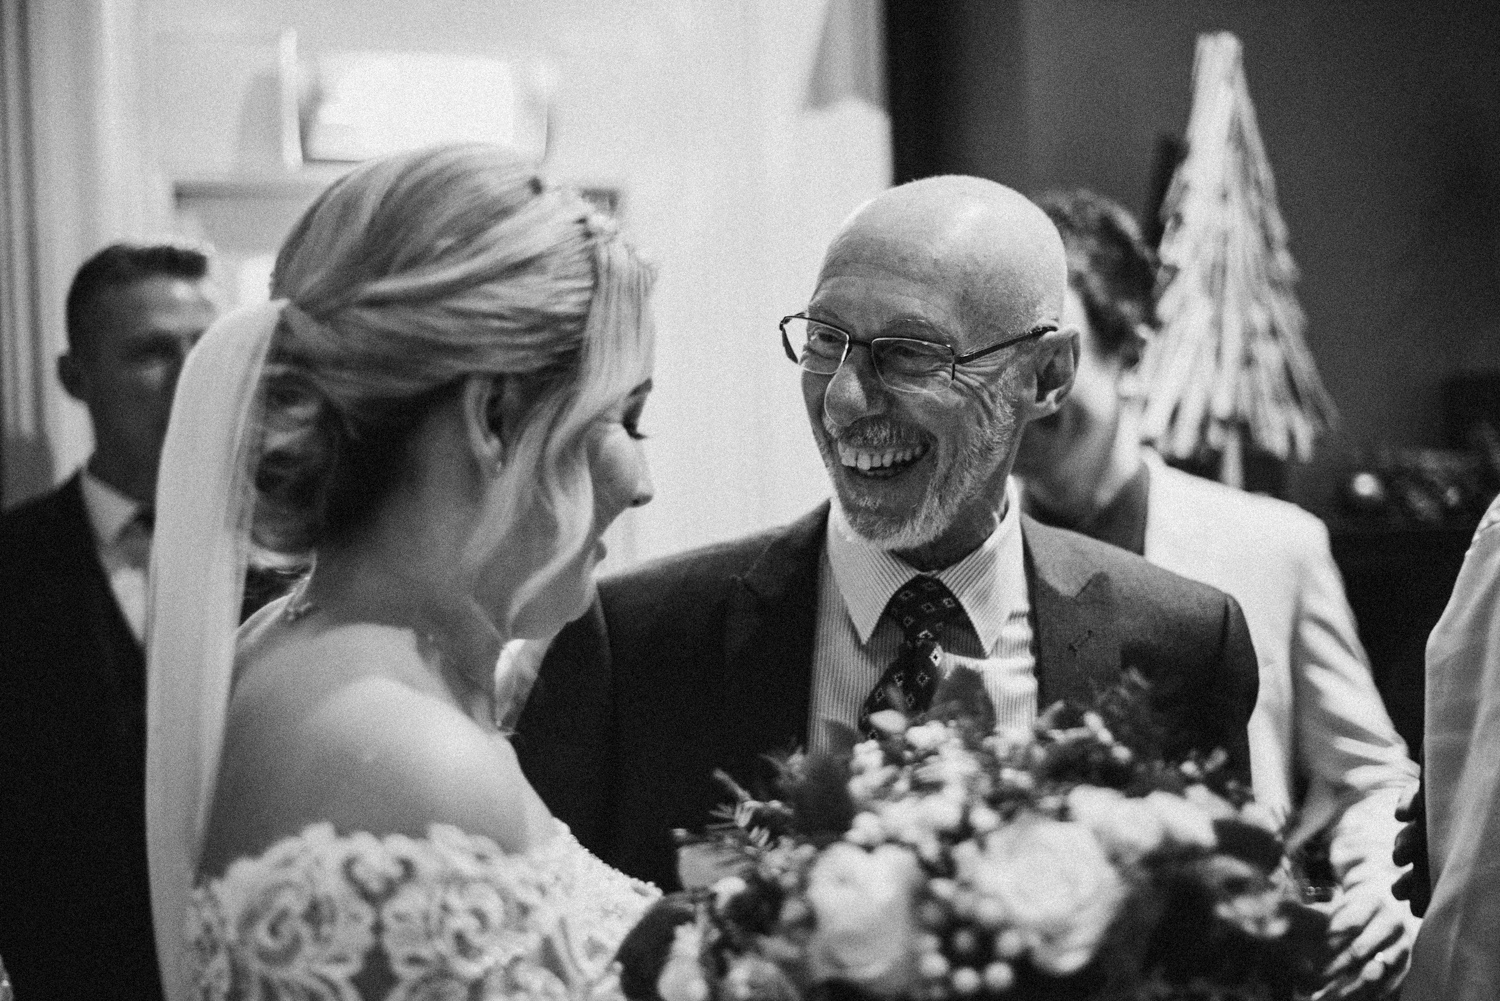 happy times with the bride